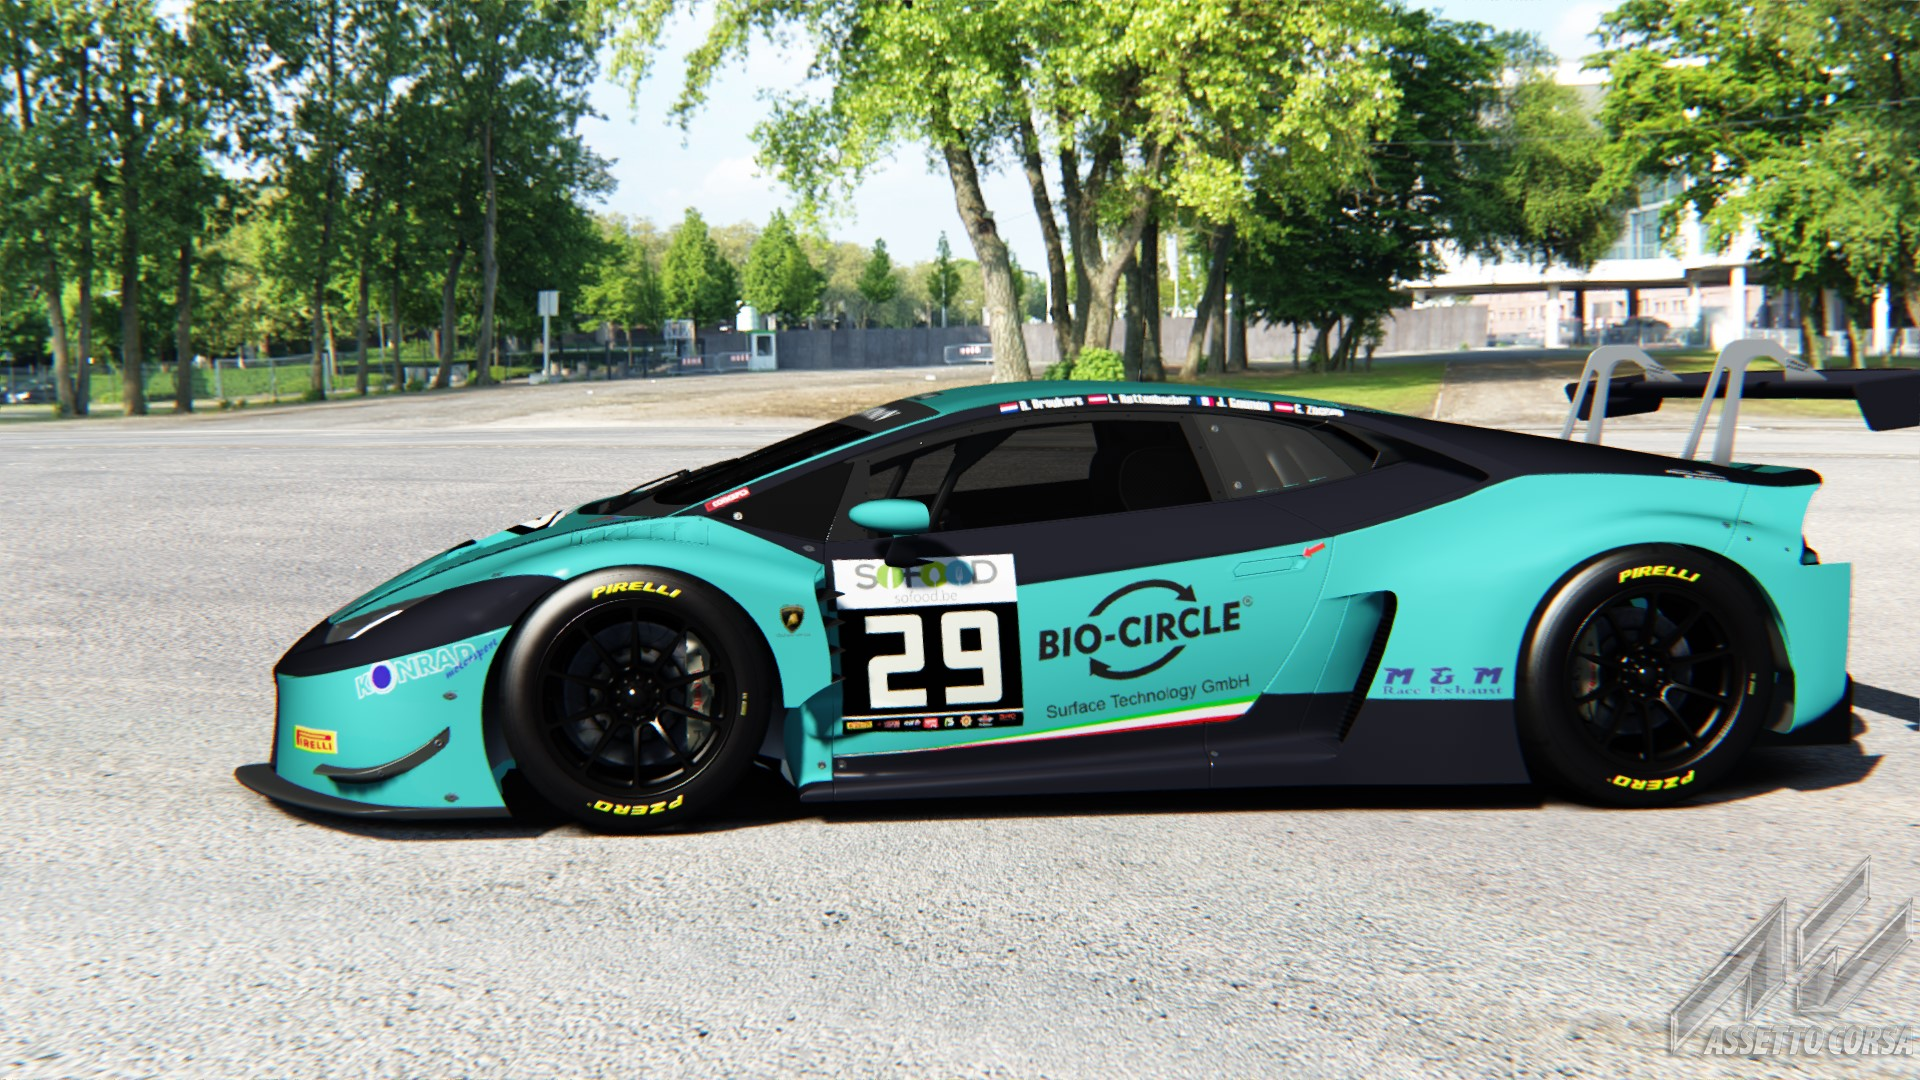 lamborghini huracan gt3 konrad motorsport 29 24h spa racedepartment. Black Bedroom Furniture Sets. Home Design Ideas